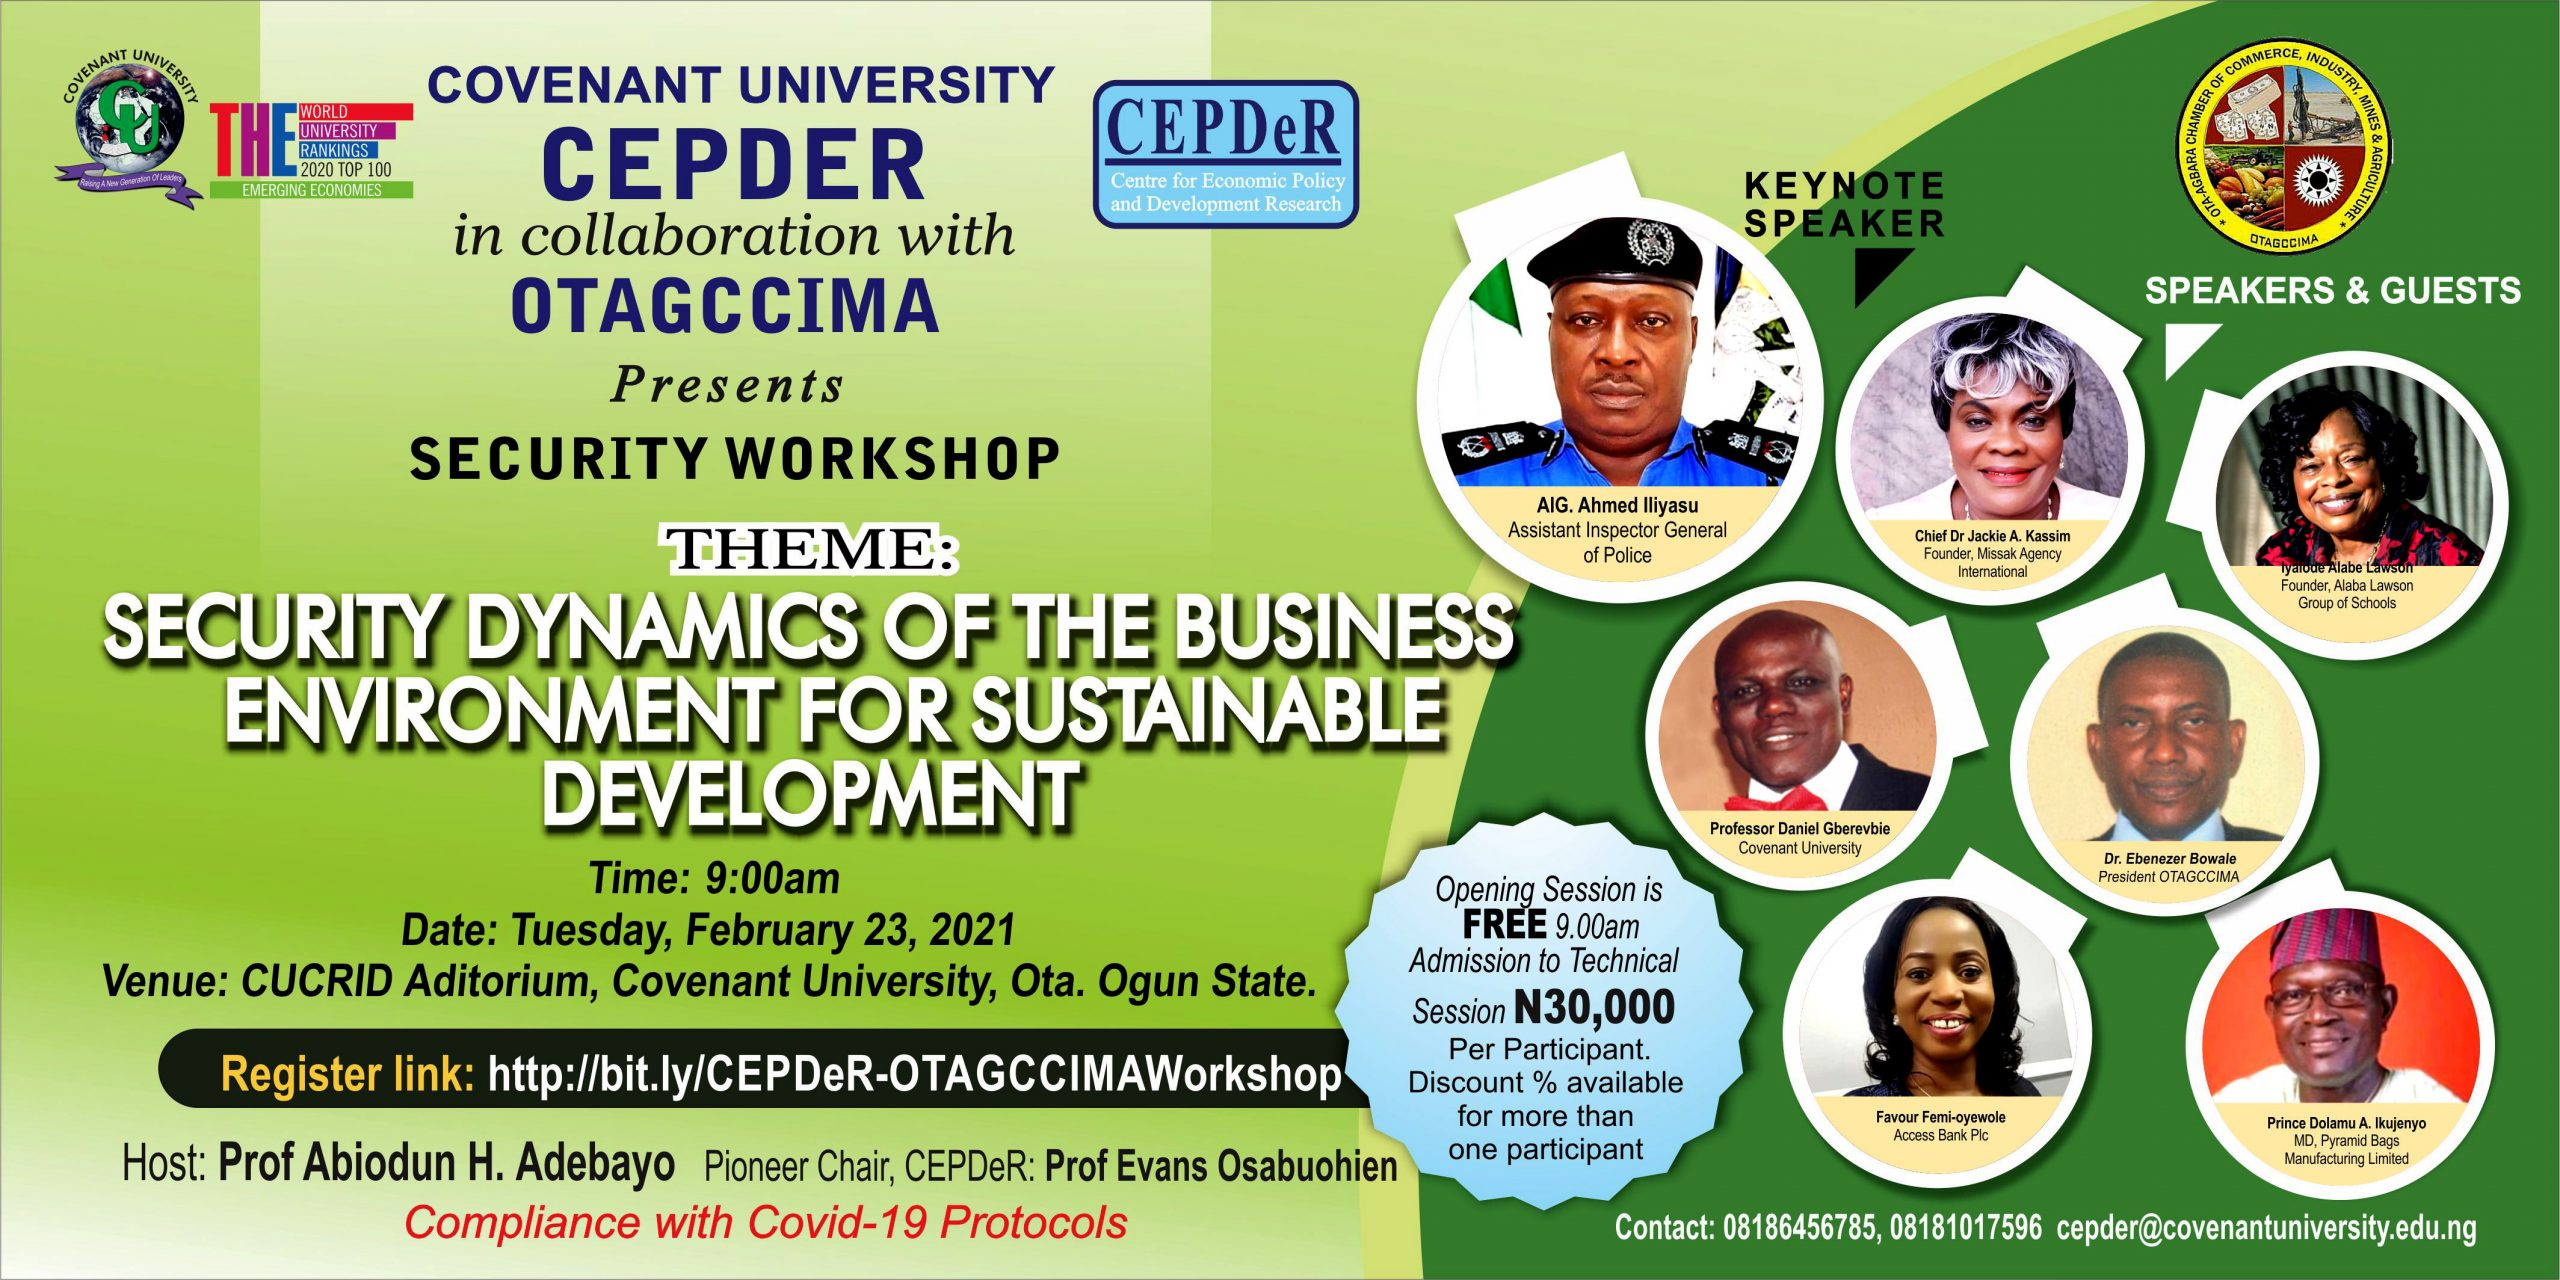 CEPDeR IN COLLABORATION WITH OTAGCCIMA PRESENTS A SECURITY WORKSHOP